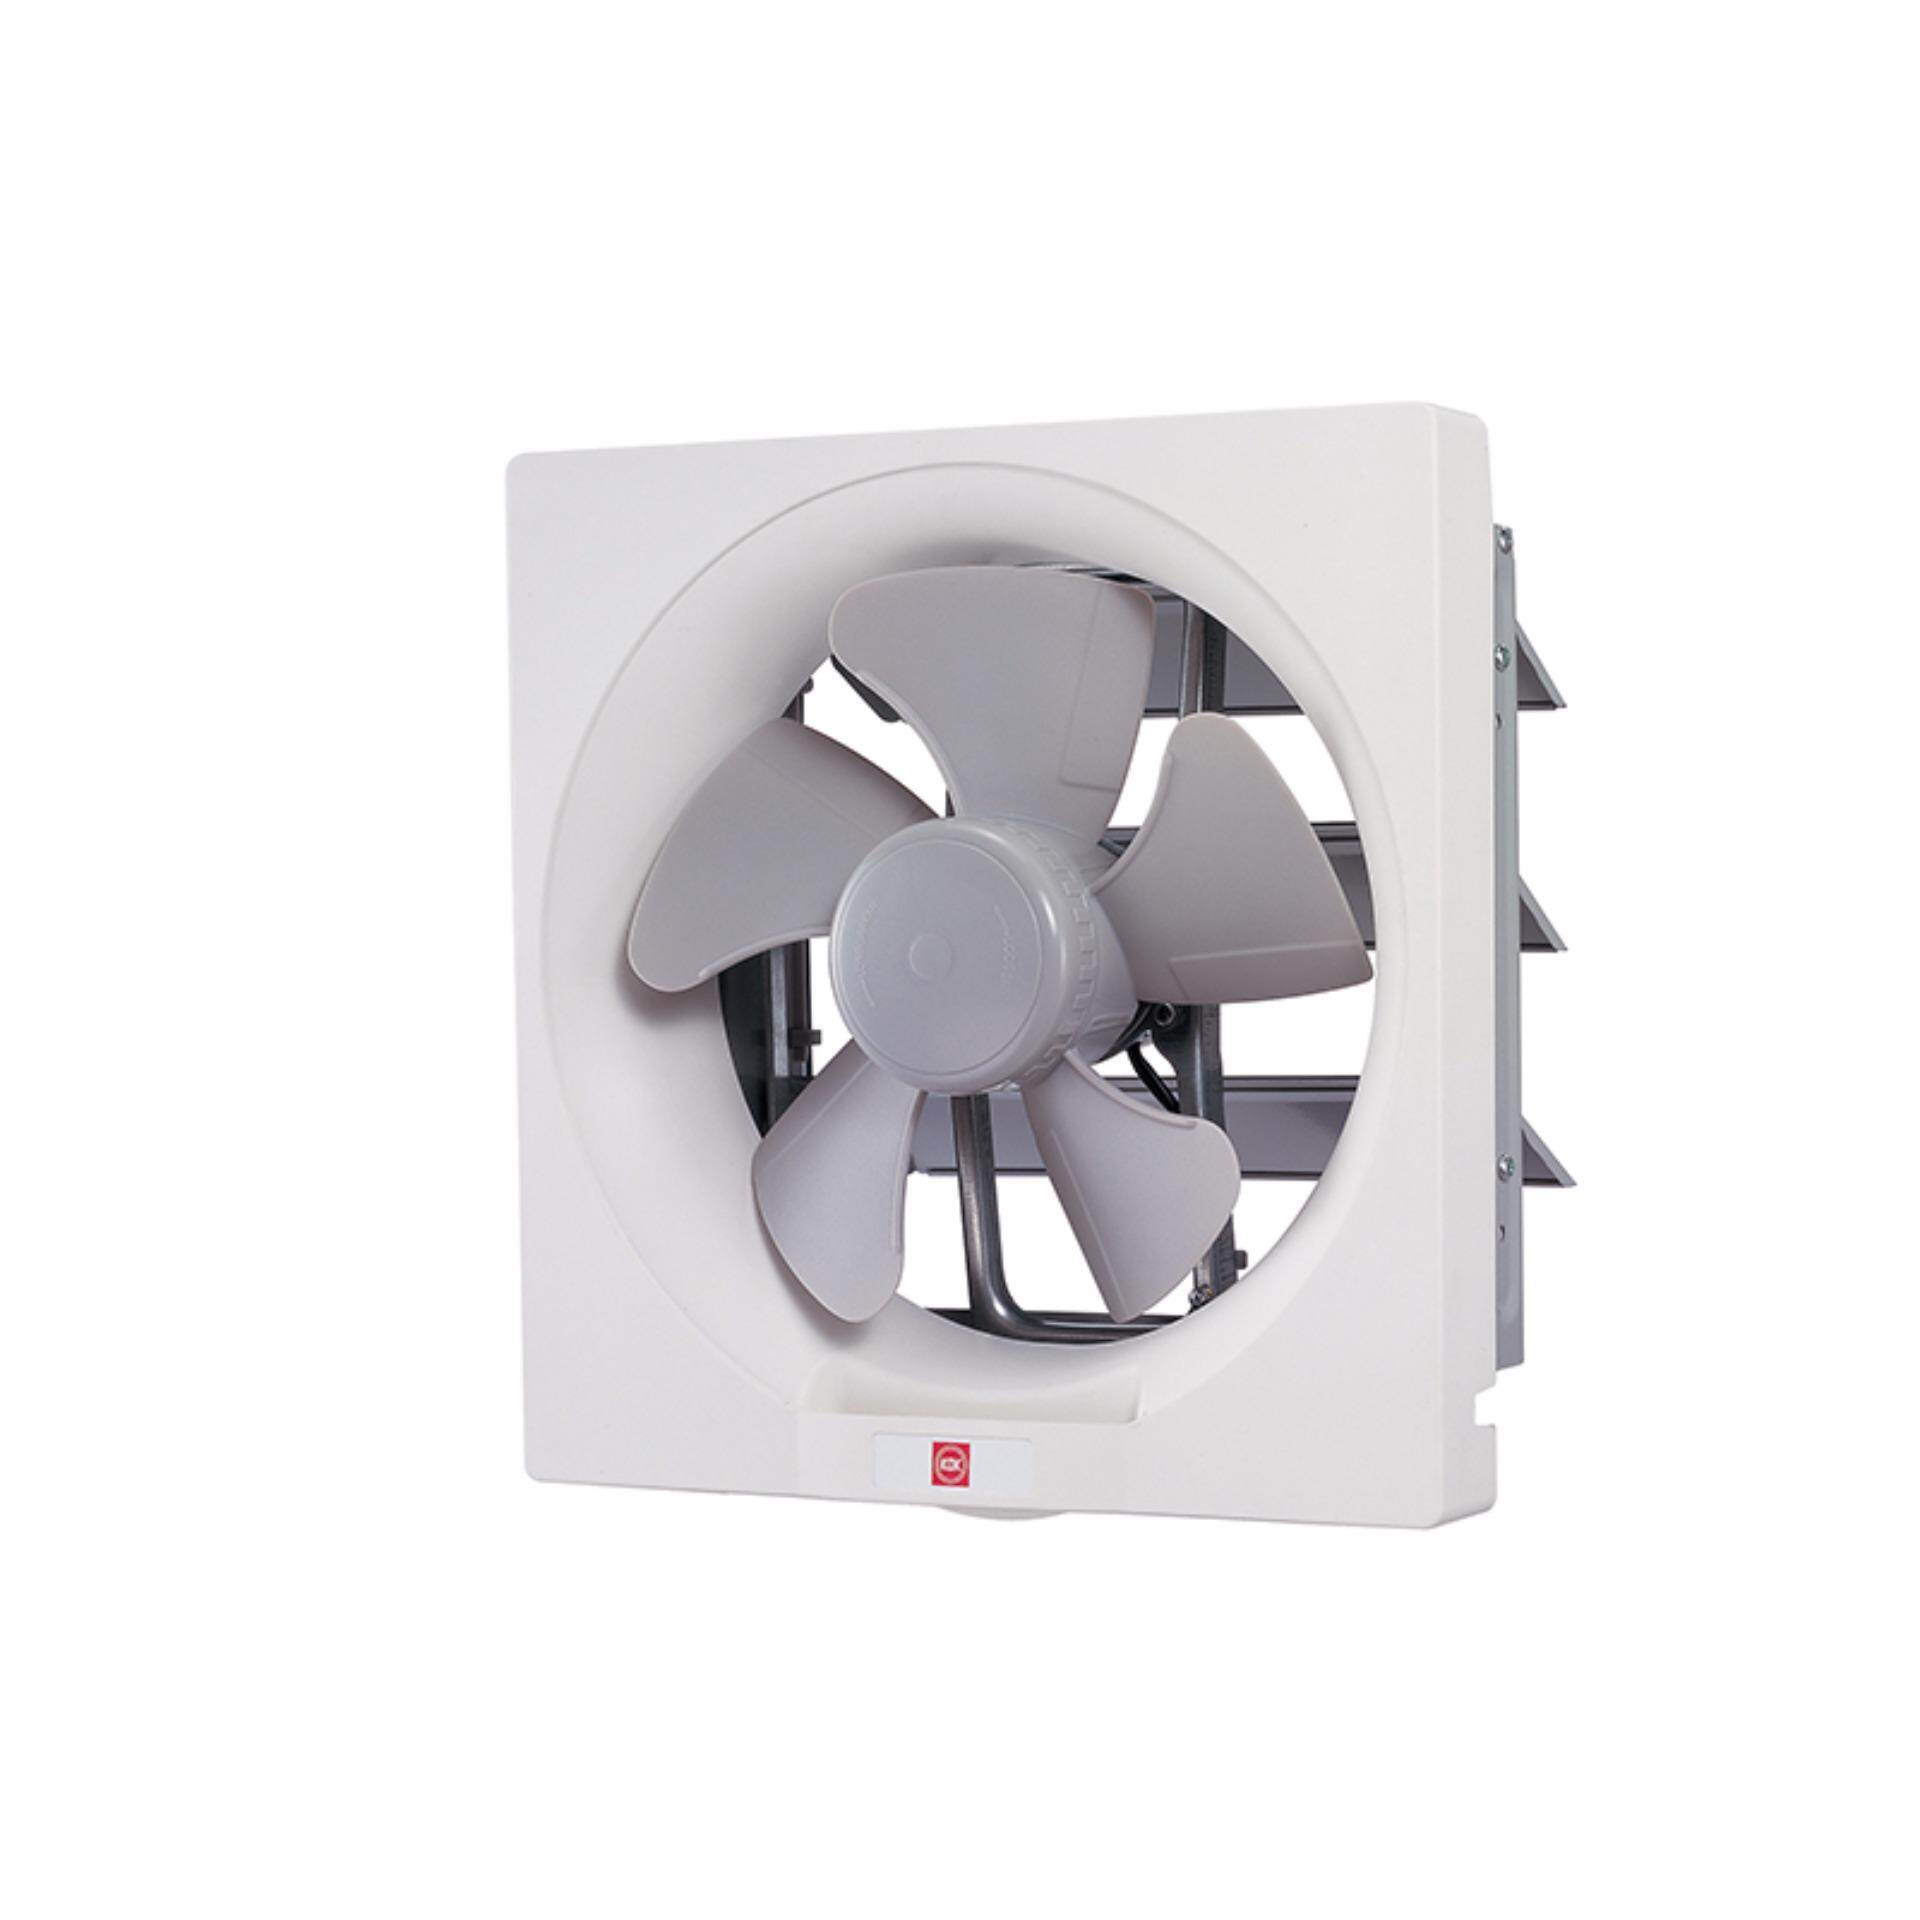 "KDK 10"" / 25cm Wall Mounted Ventilating Fan 25AQM7"